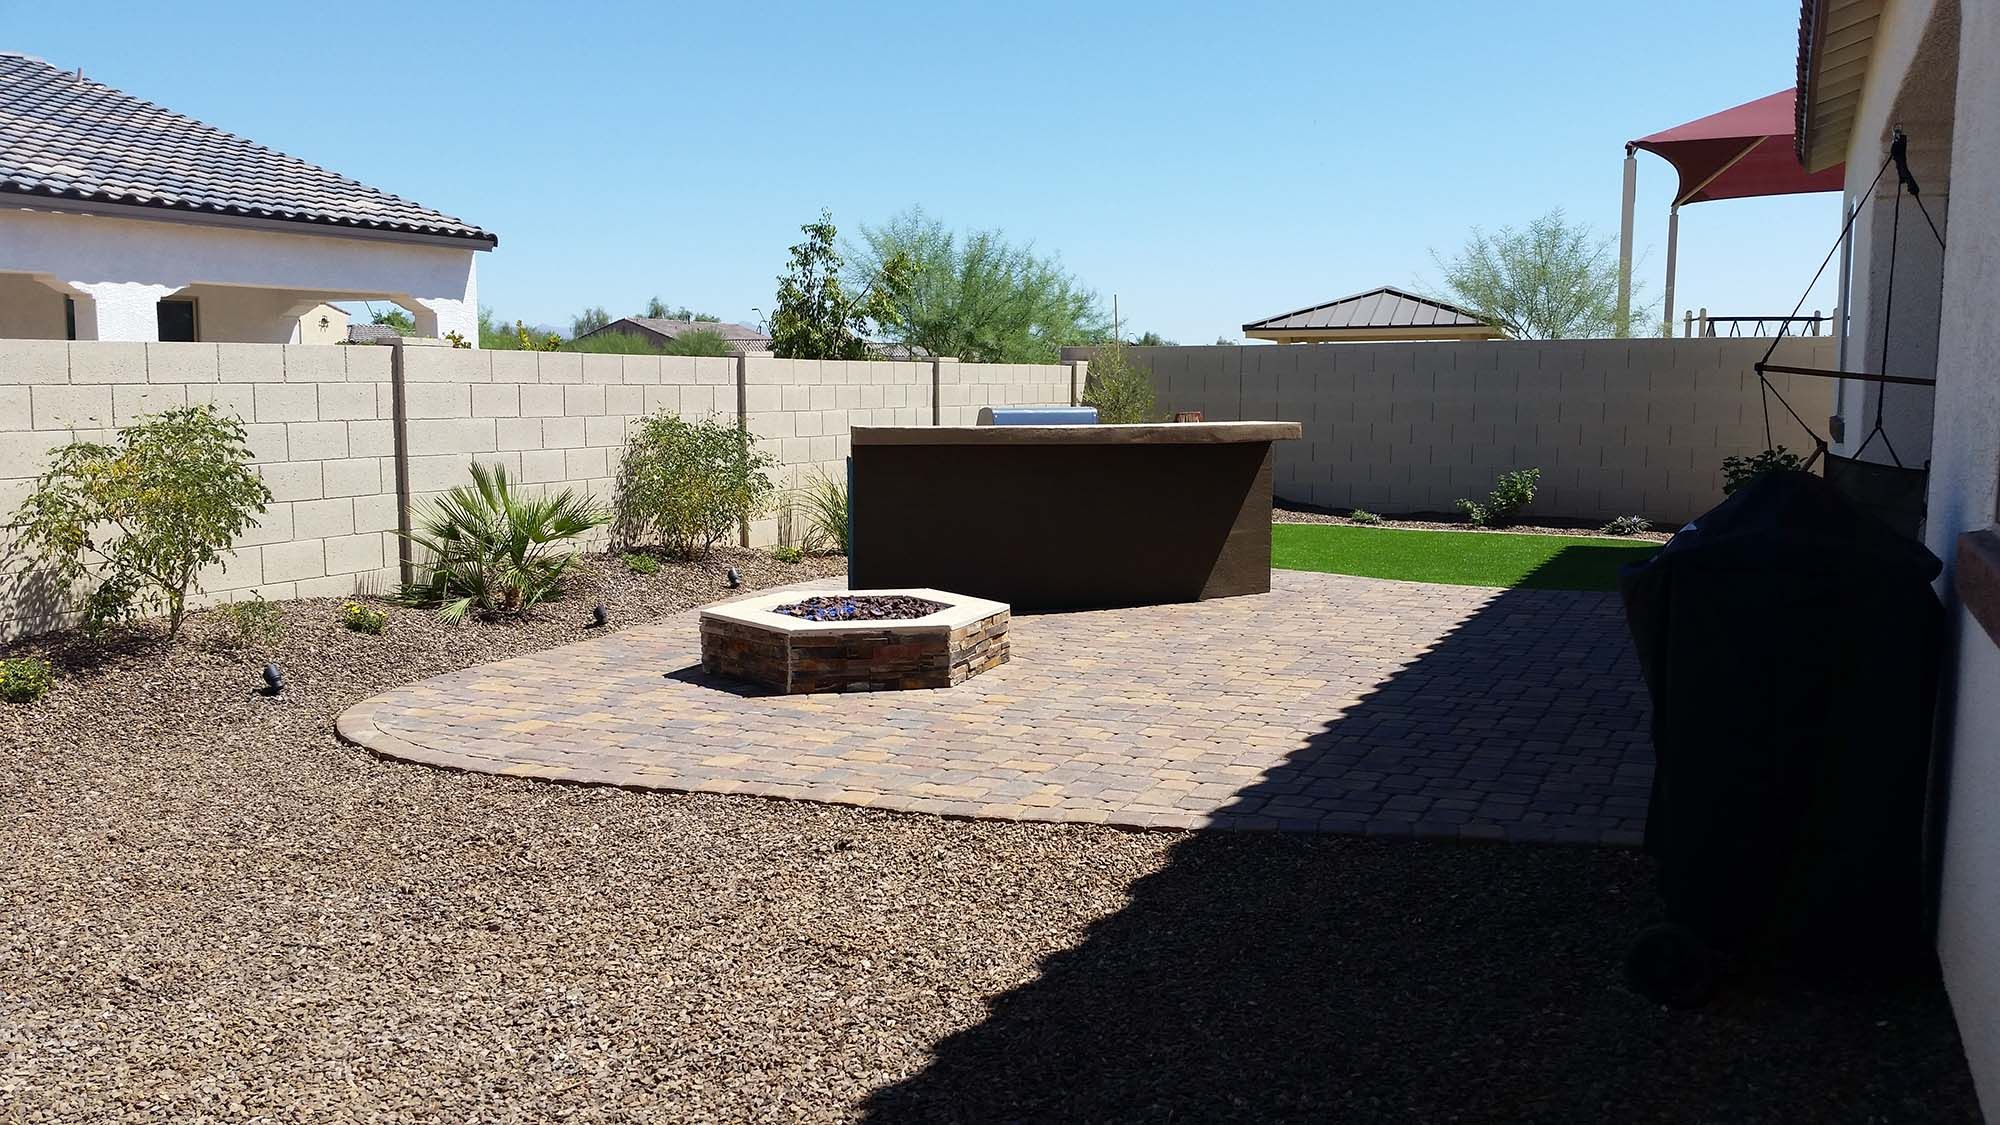 Arizona Custom Desert Landscape Design With Desert Plants Rock - Desert backyard landscaping ideas